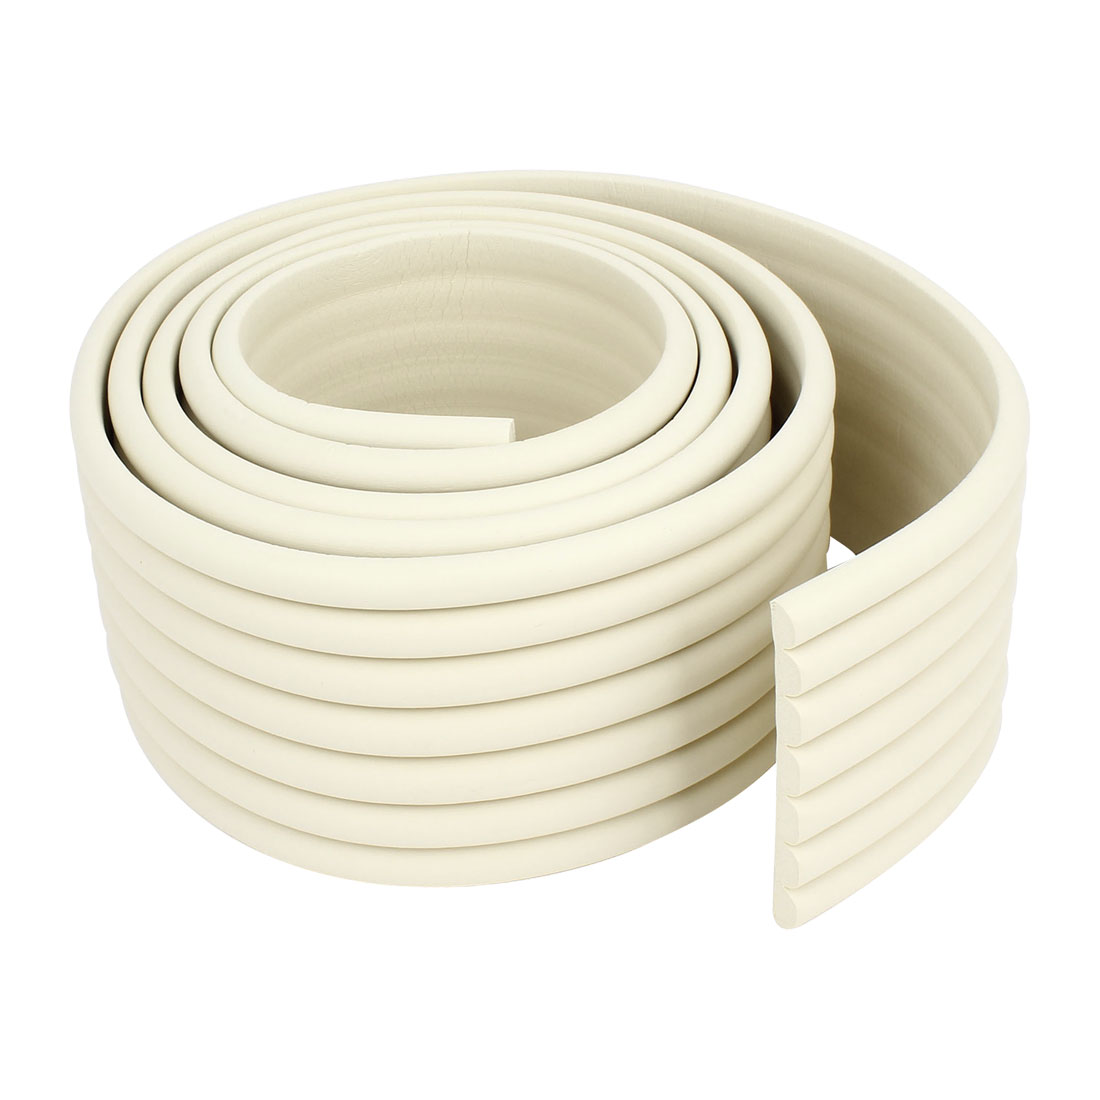 Off White Soft Flexible Foam Table Protector Corner Edge Guard Strip 2M Long 8cm Width